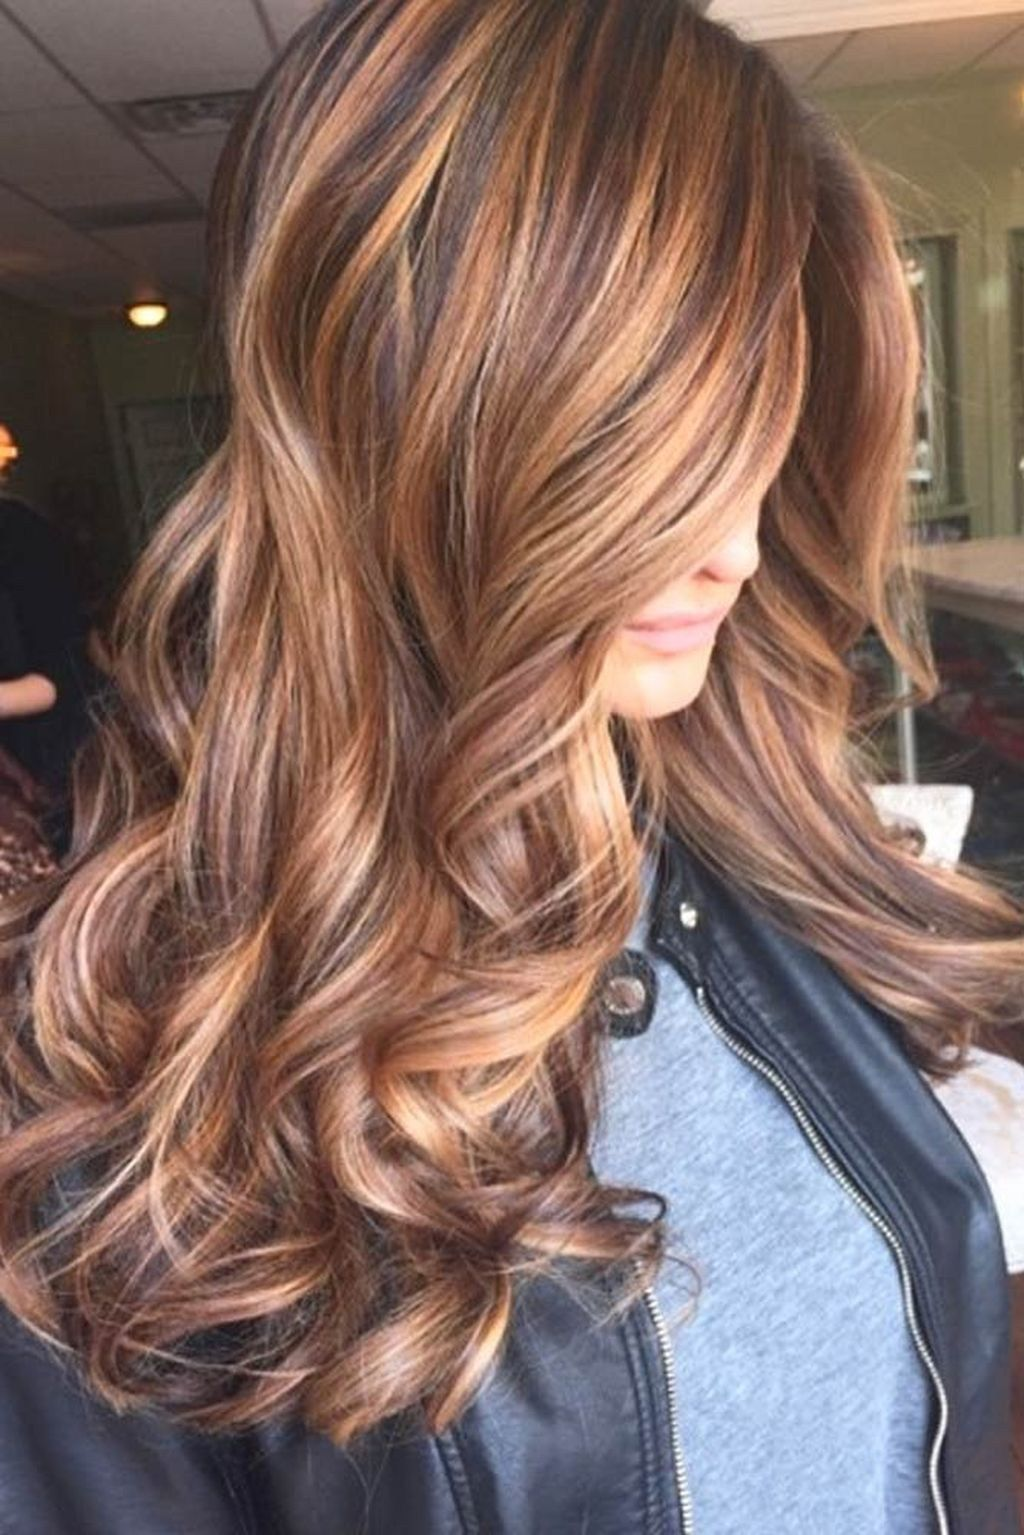 Stunning fall hair color ideas 2017 trends 21 hair coloring stunning fall hair color ideas 2017 trends 21 pmusecretfo Gallery